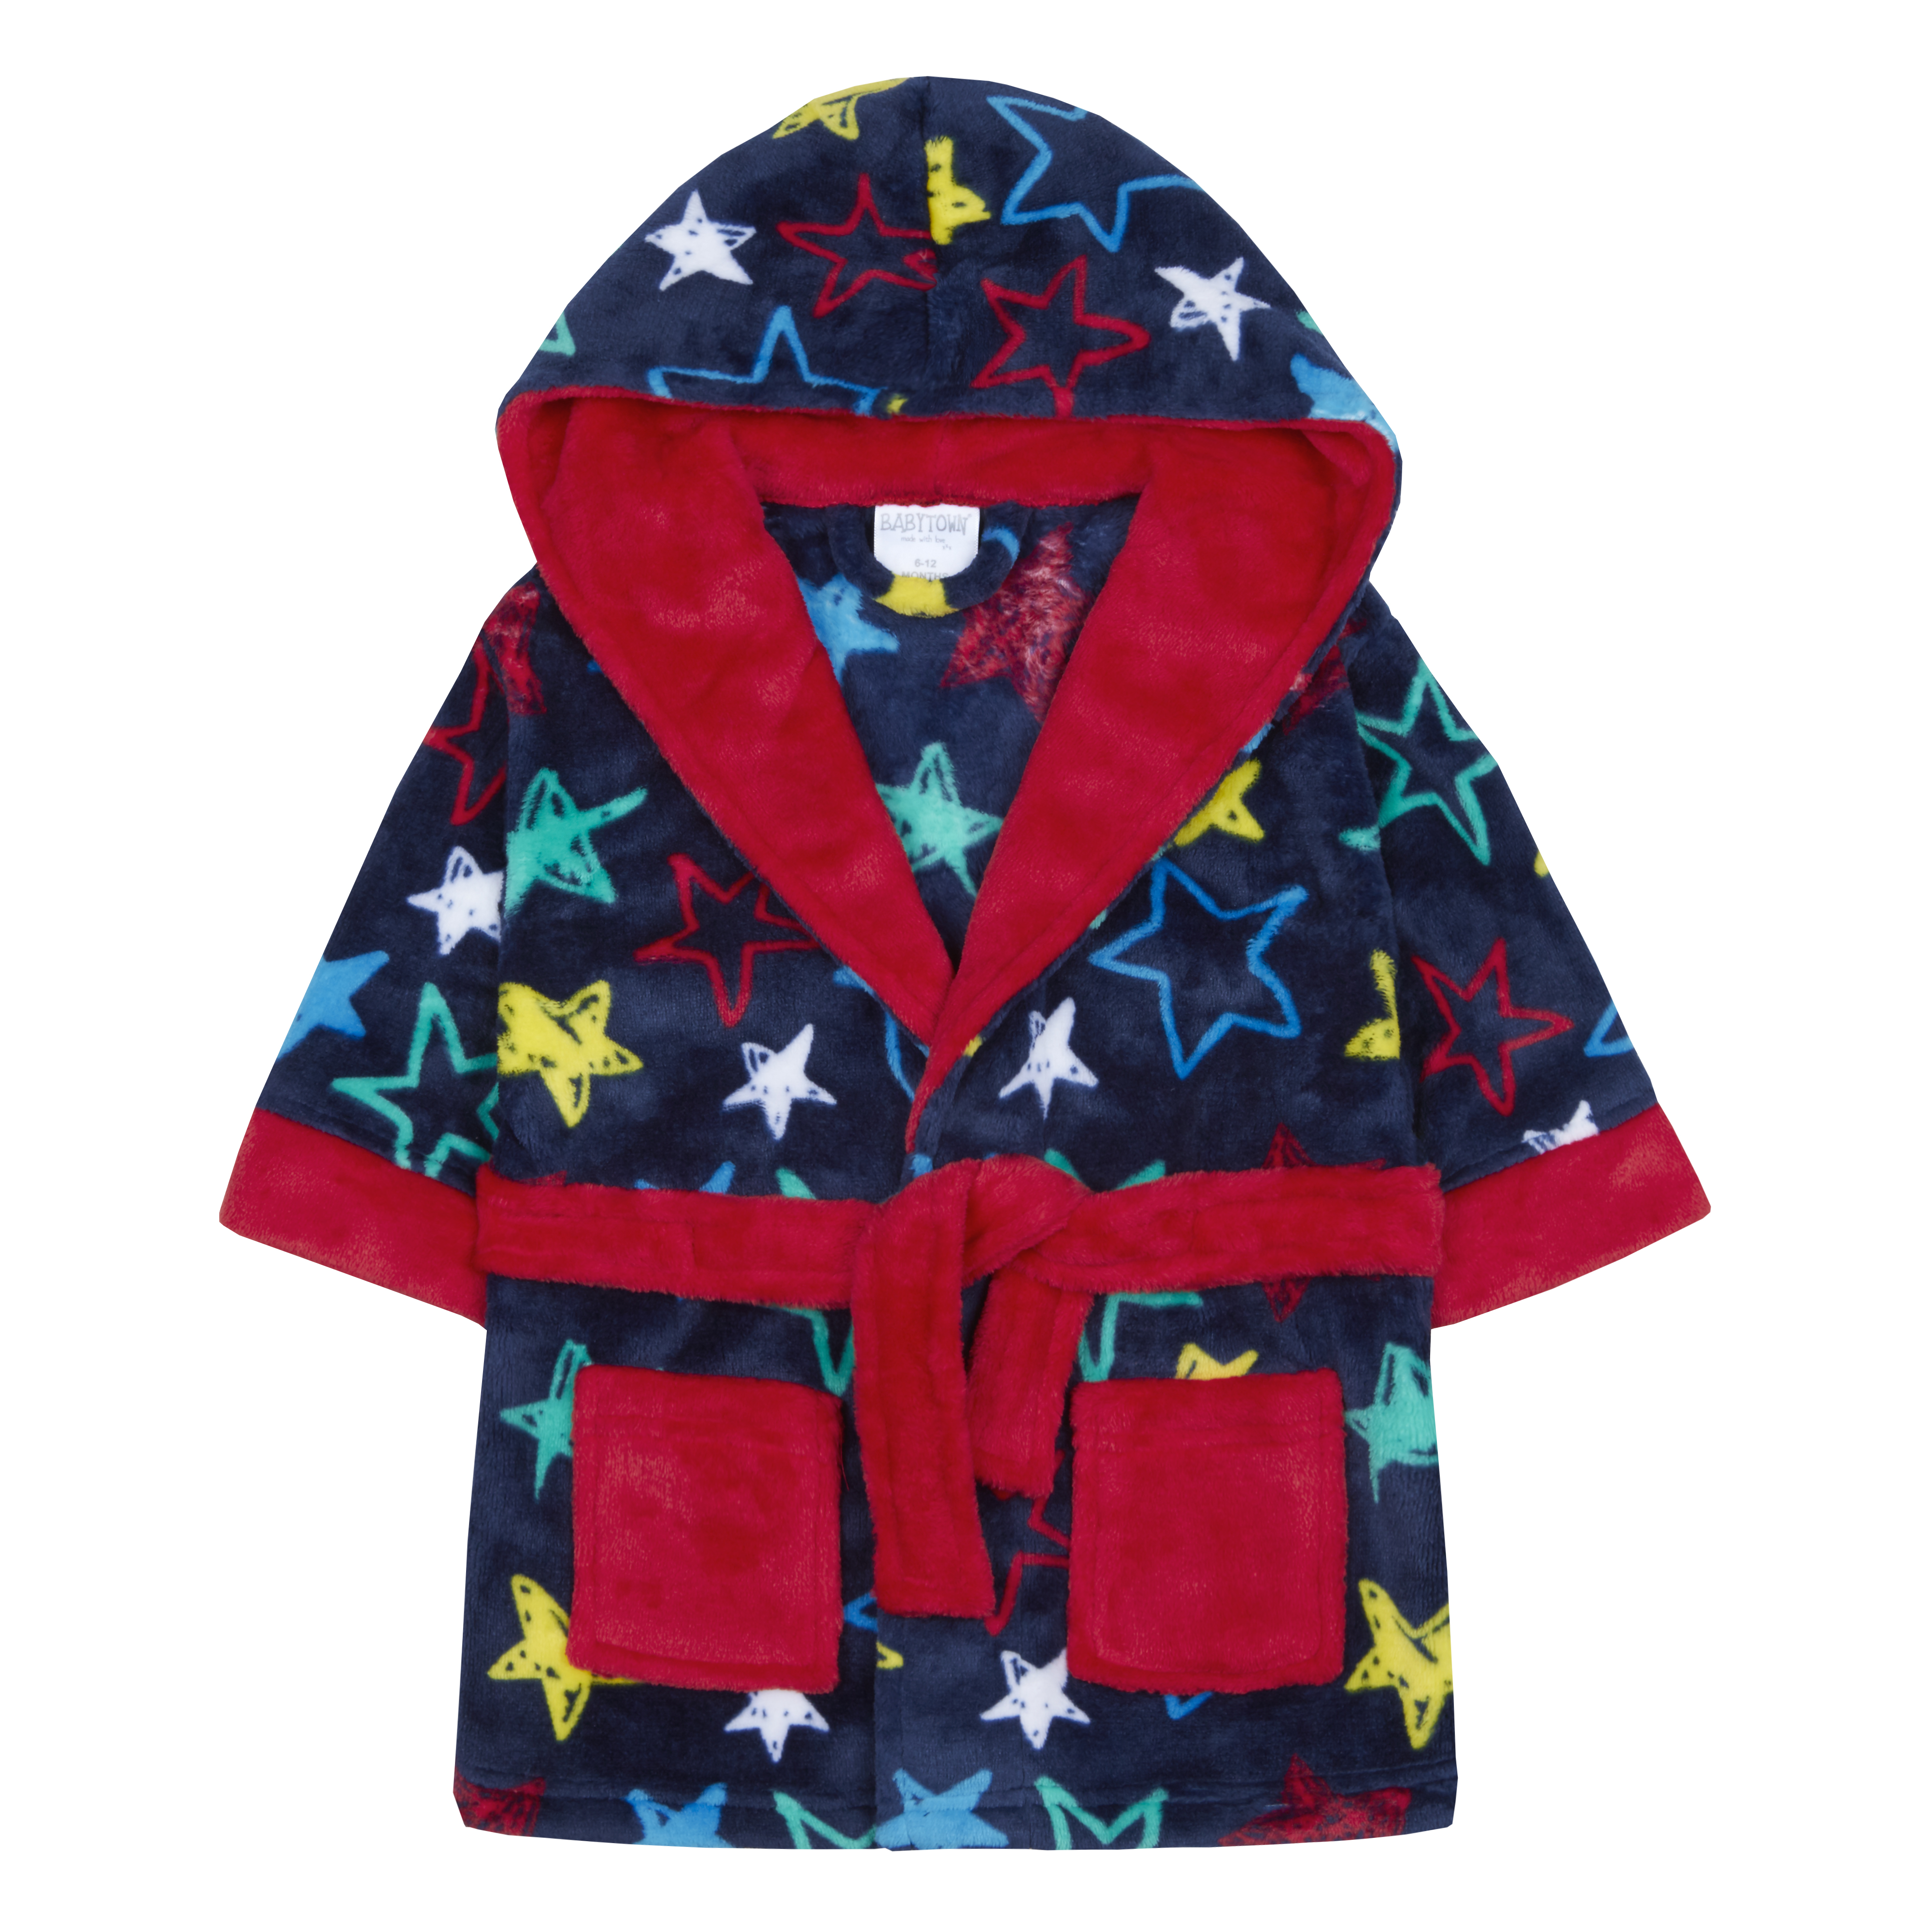 5f1abb8745825 Baby Boys Dressing Gown Robe Star Print Plush Fleece Snuggle Soft Warm  Hooded